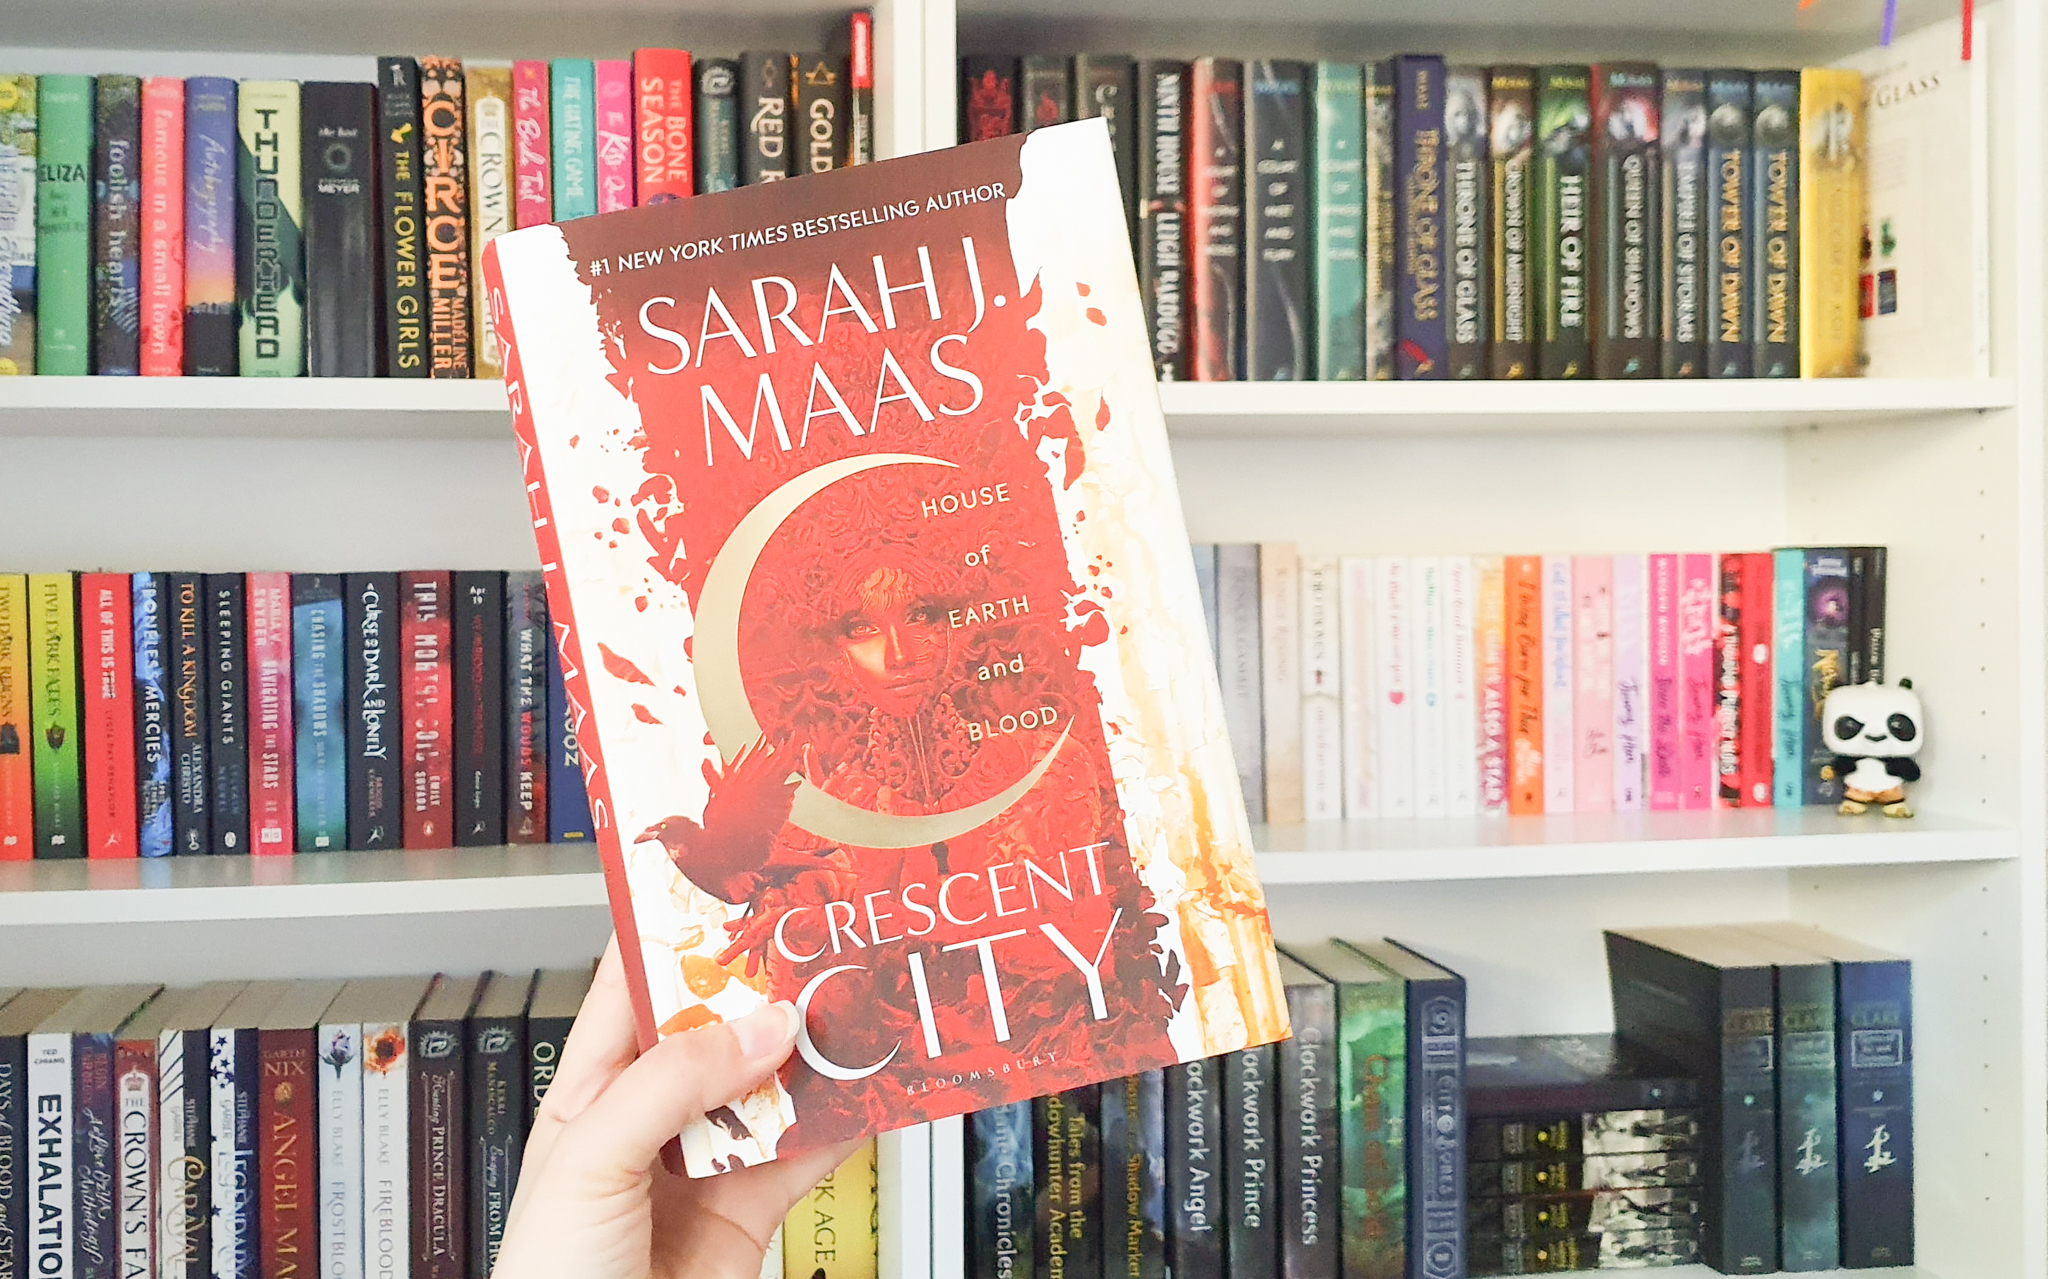 Crescent City: House of Earth & Blood Book Review + Fan Art Finds